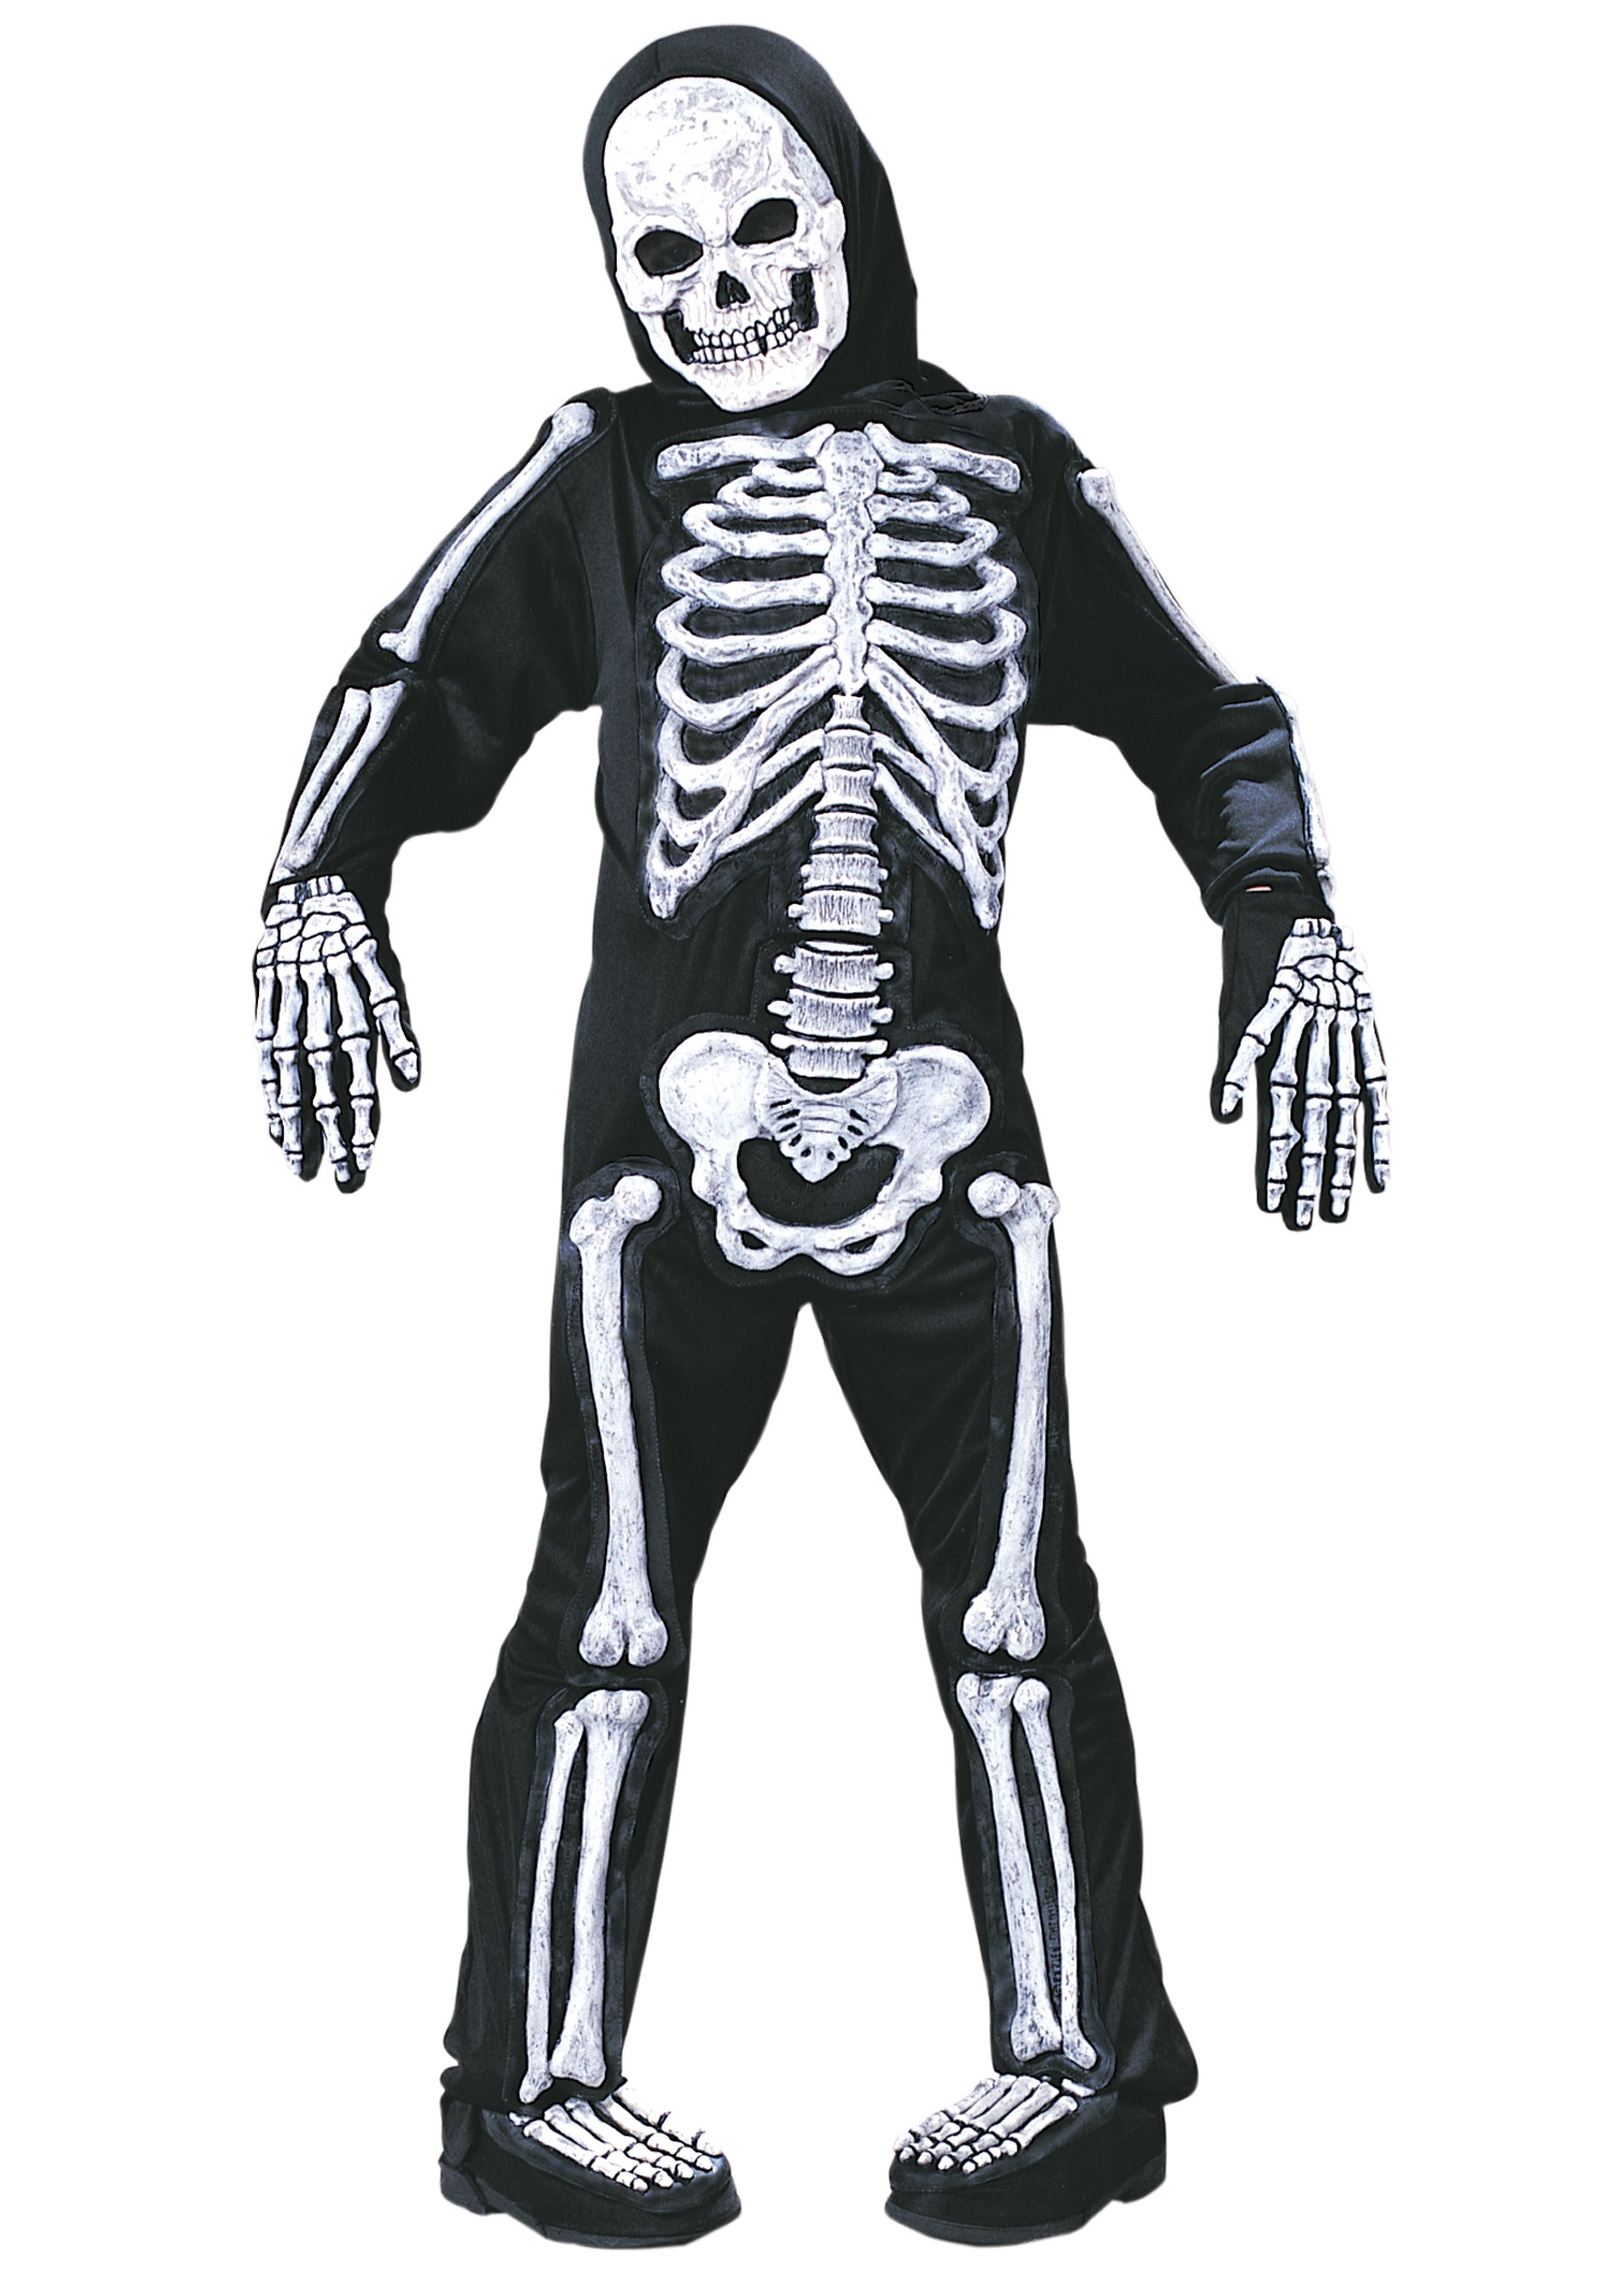 kids skeleton costume - Skeleton Halloween Costume For Kids